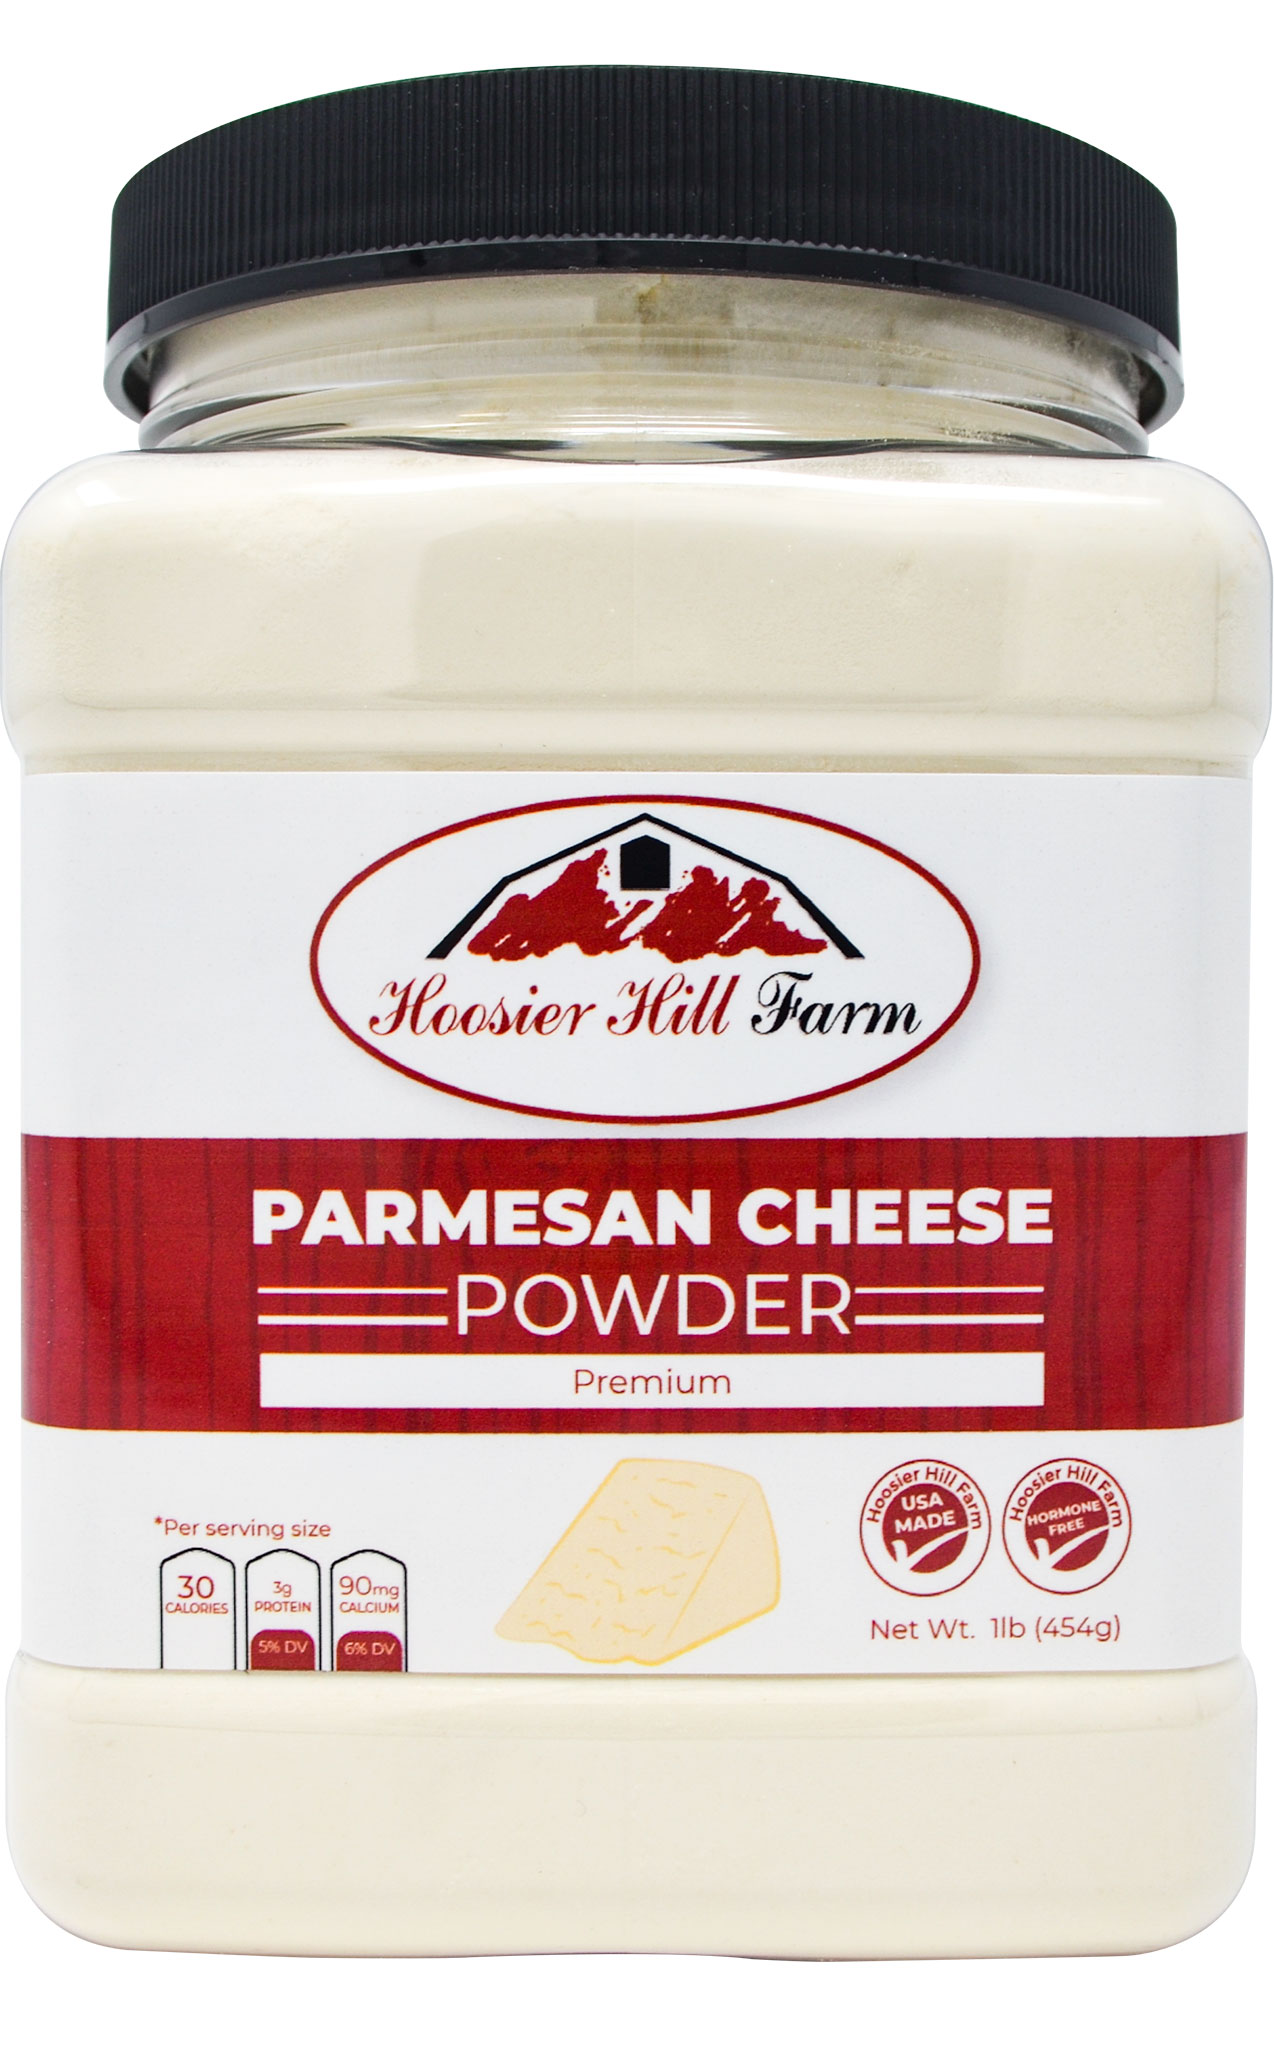 Parmesan Cheese powder by Hoosier Hill Farm, 1 lb.